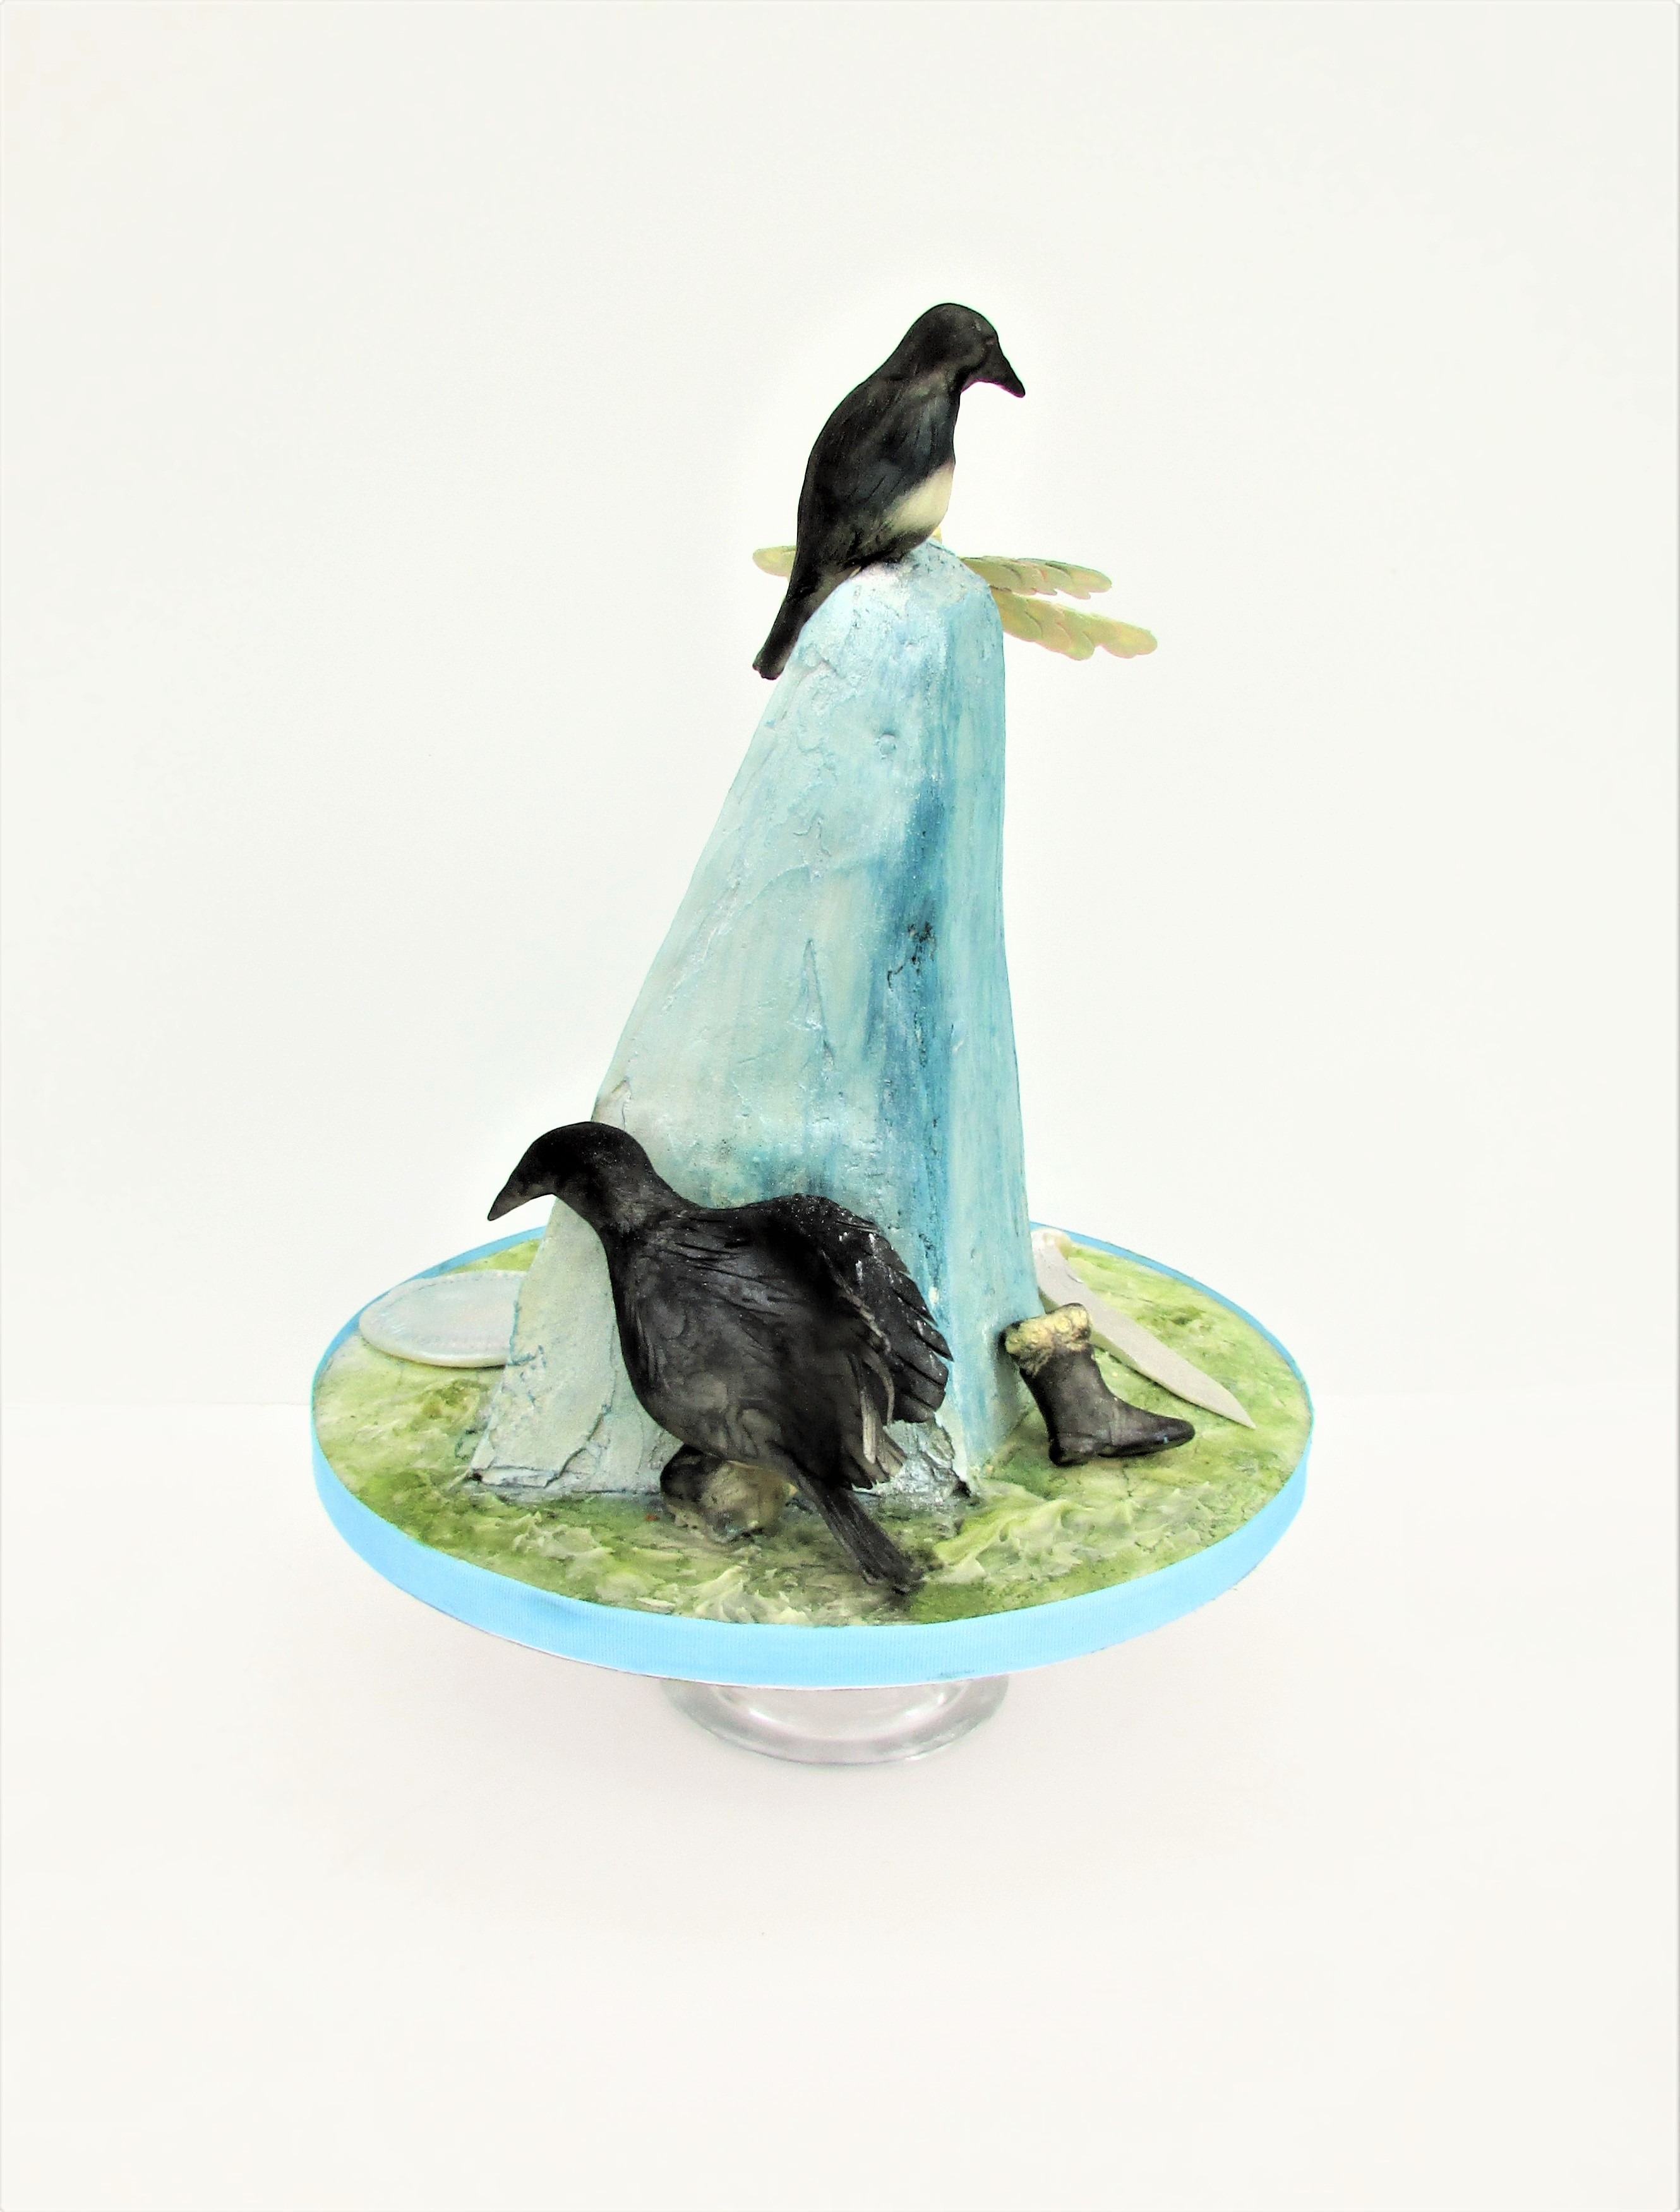 Party cake with blue crystal and sugar birds